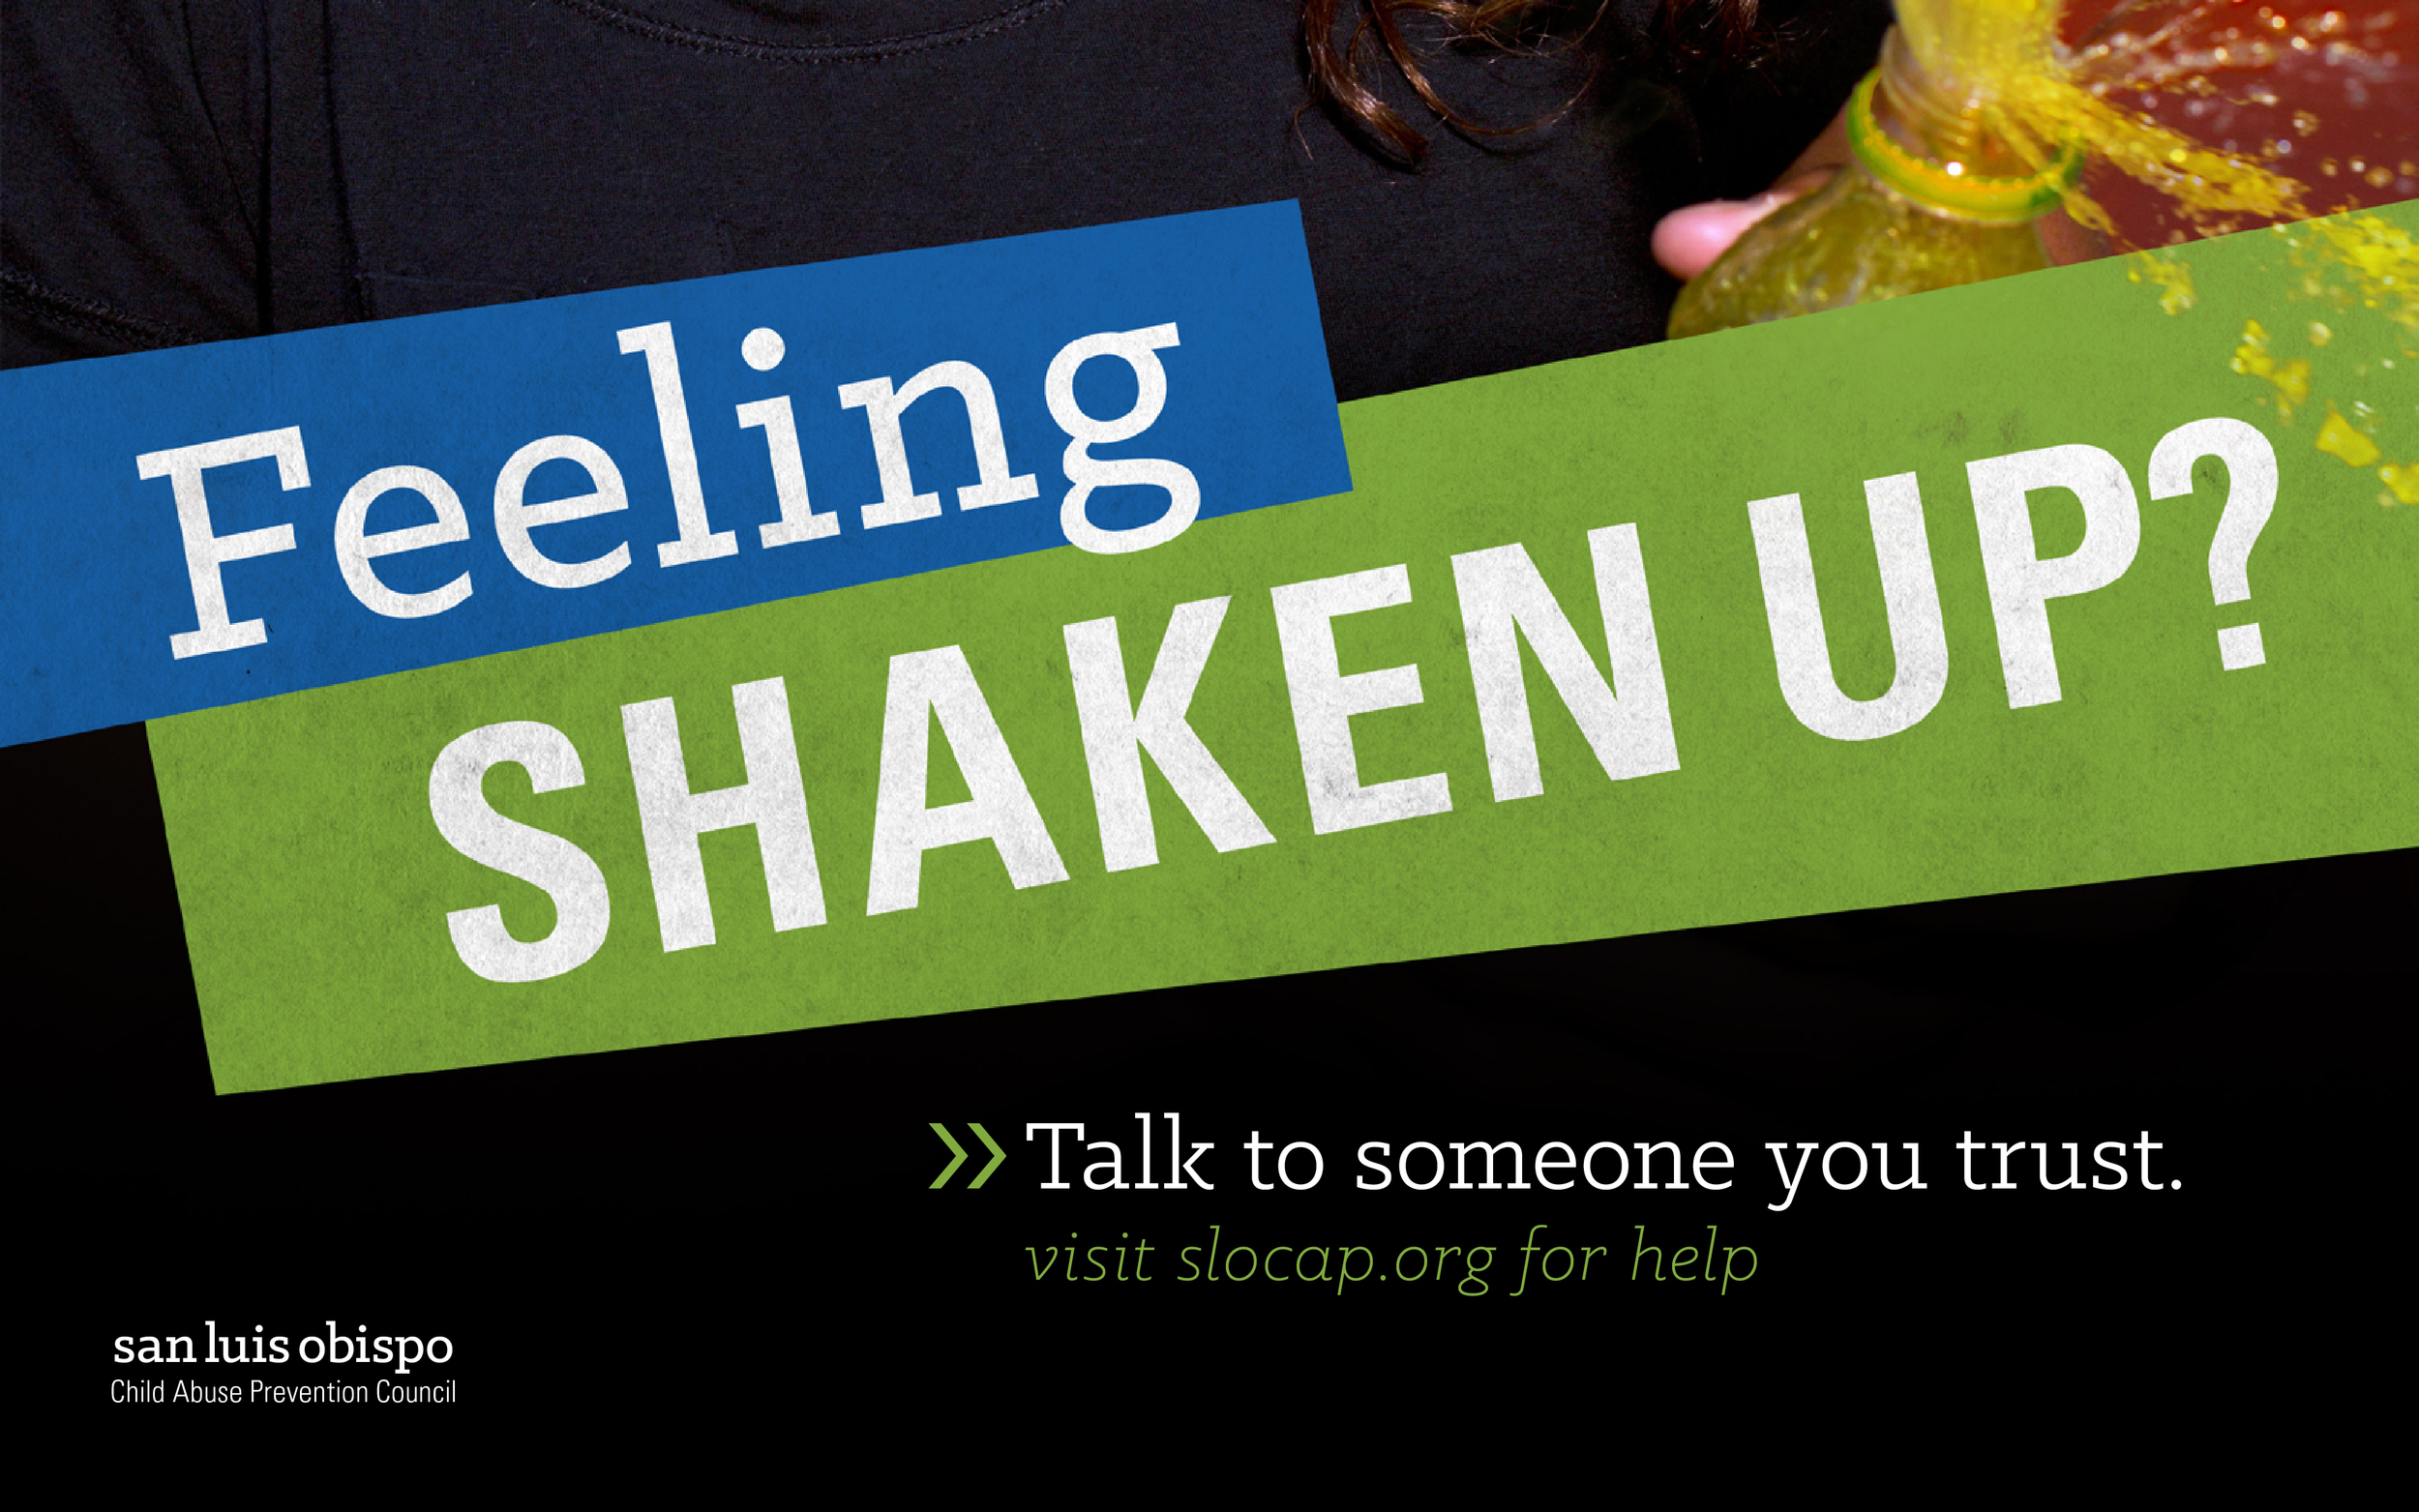 Feeling Shaken Up Poster Detail